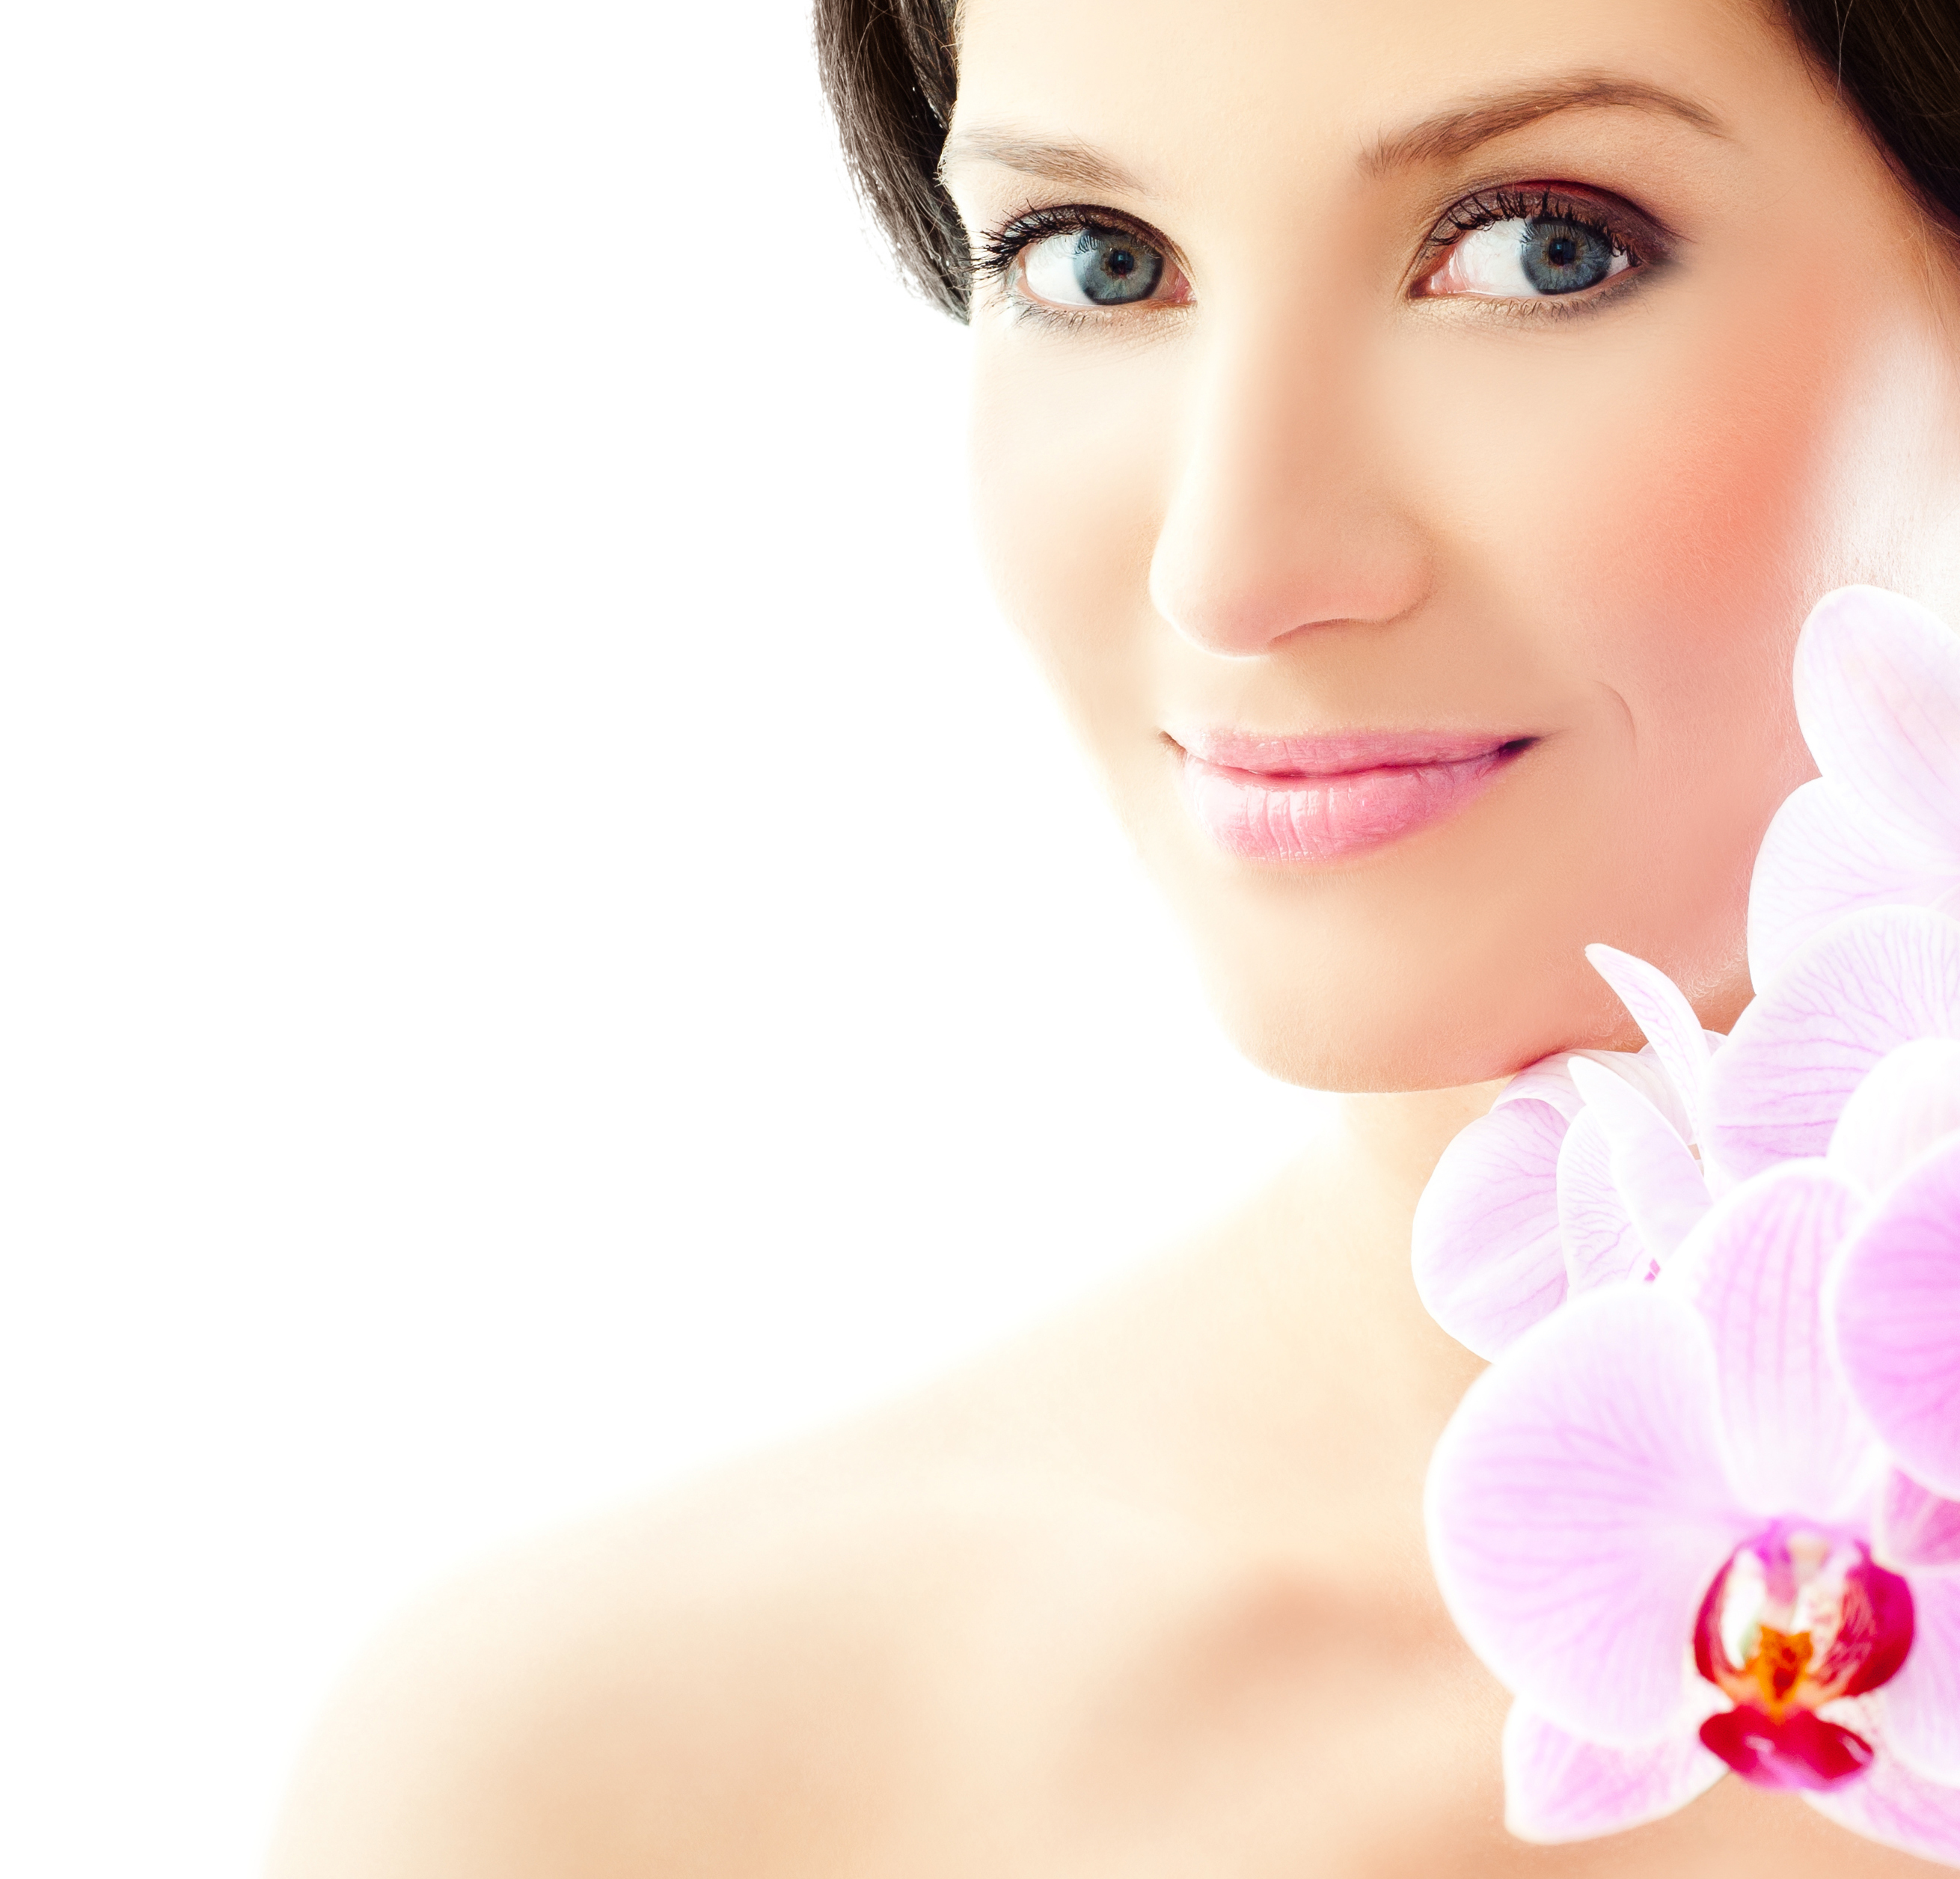 Supreme Skin in Asehville, NC Introduces New Treatments ...